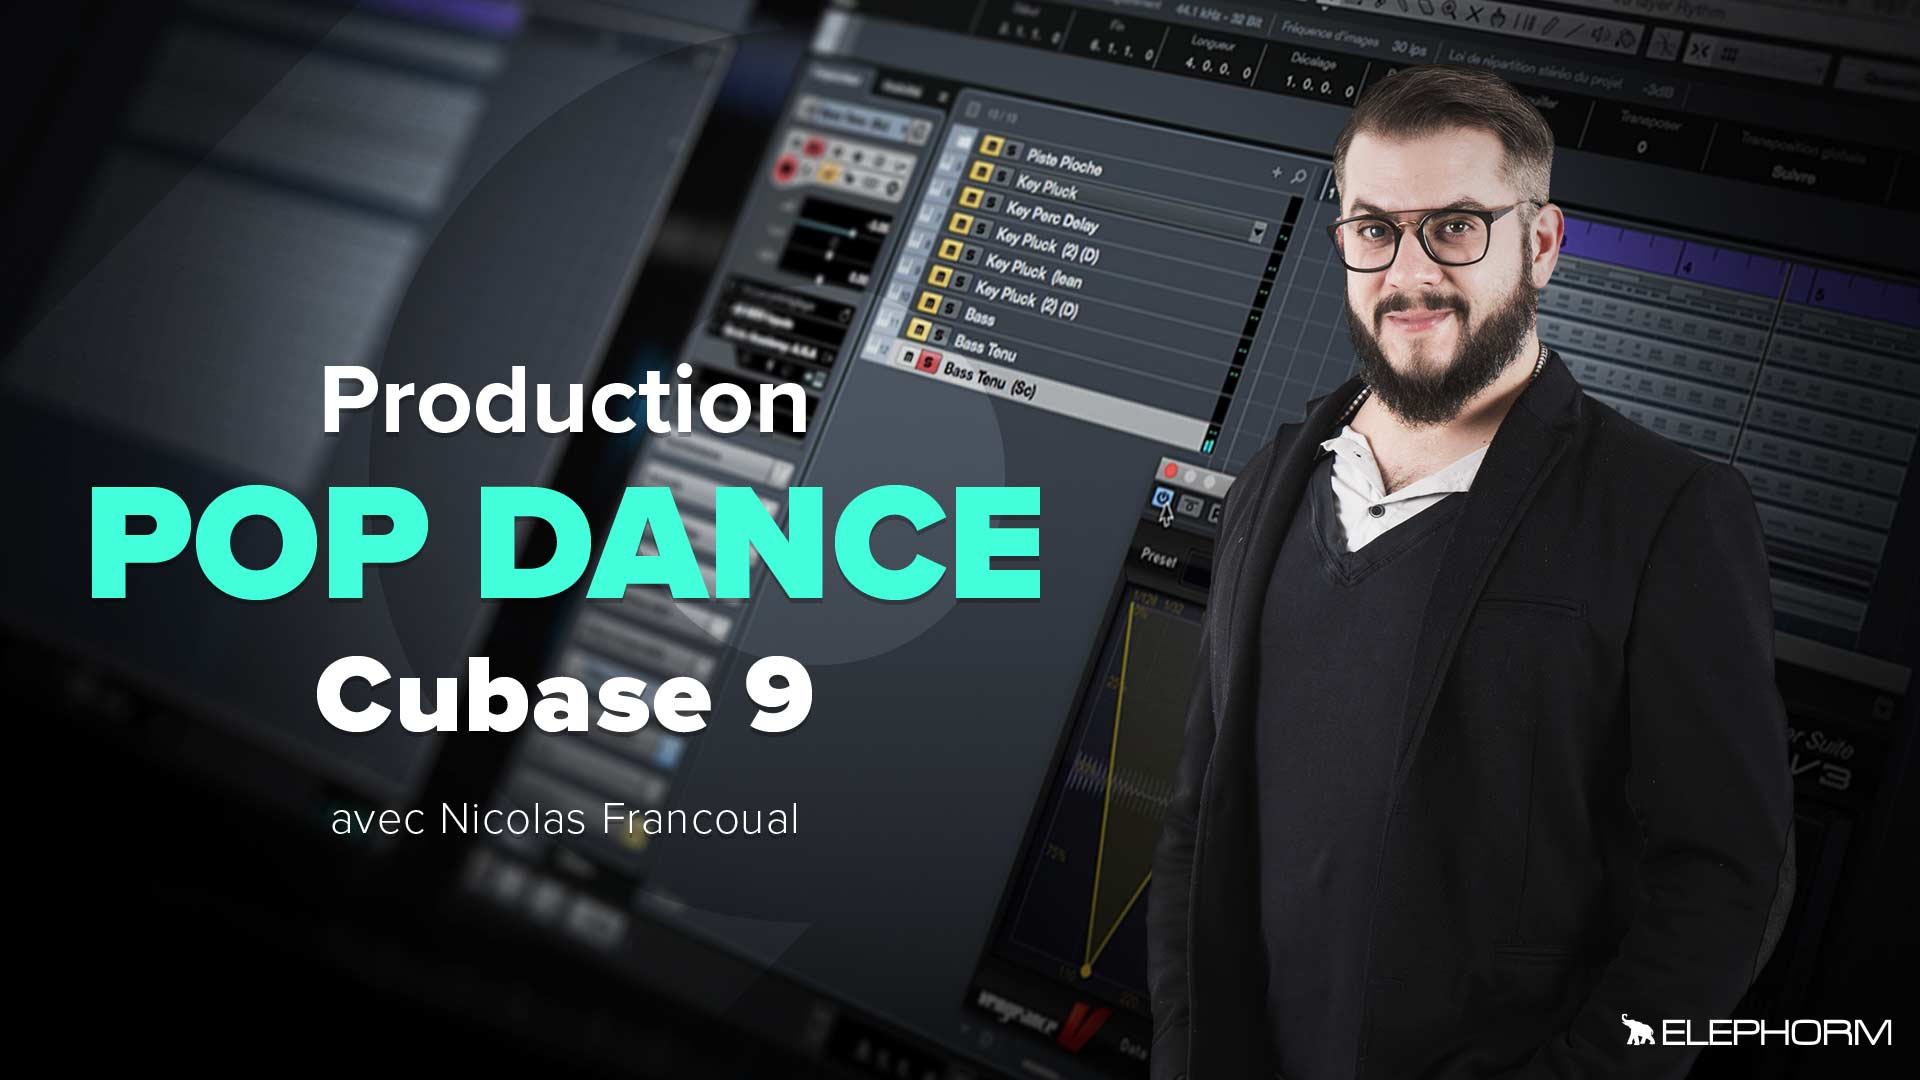 Production Pop Dance avec Cubase 9